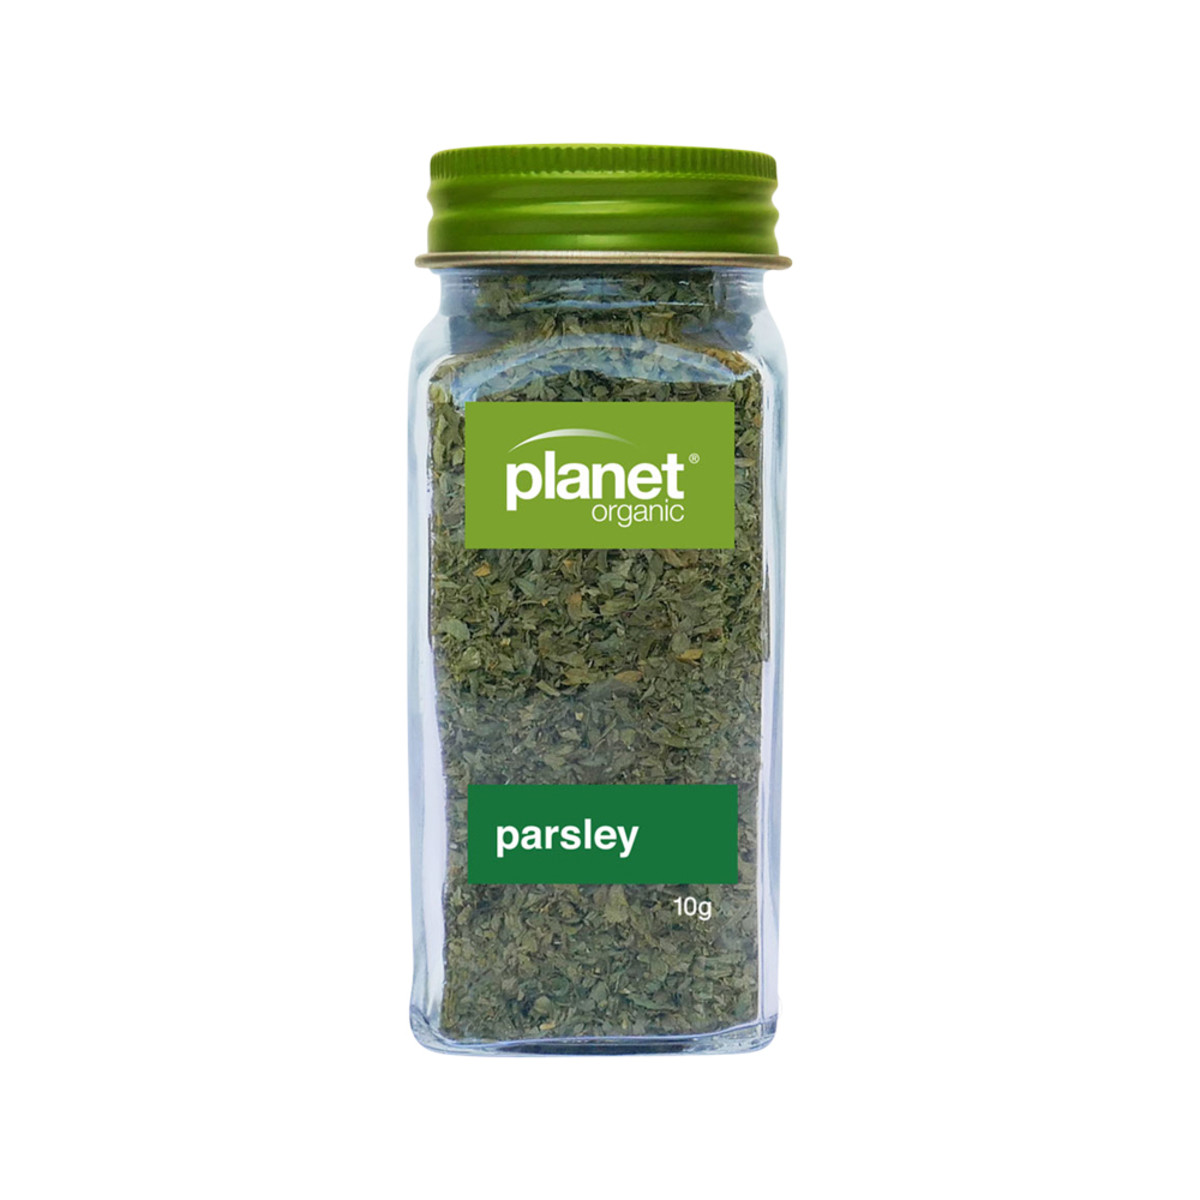 PLANET ORGANIC PARSLEY SHAKER 10G